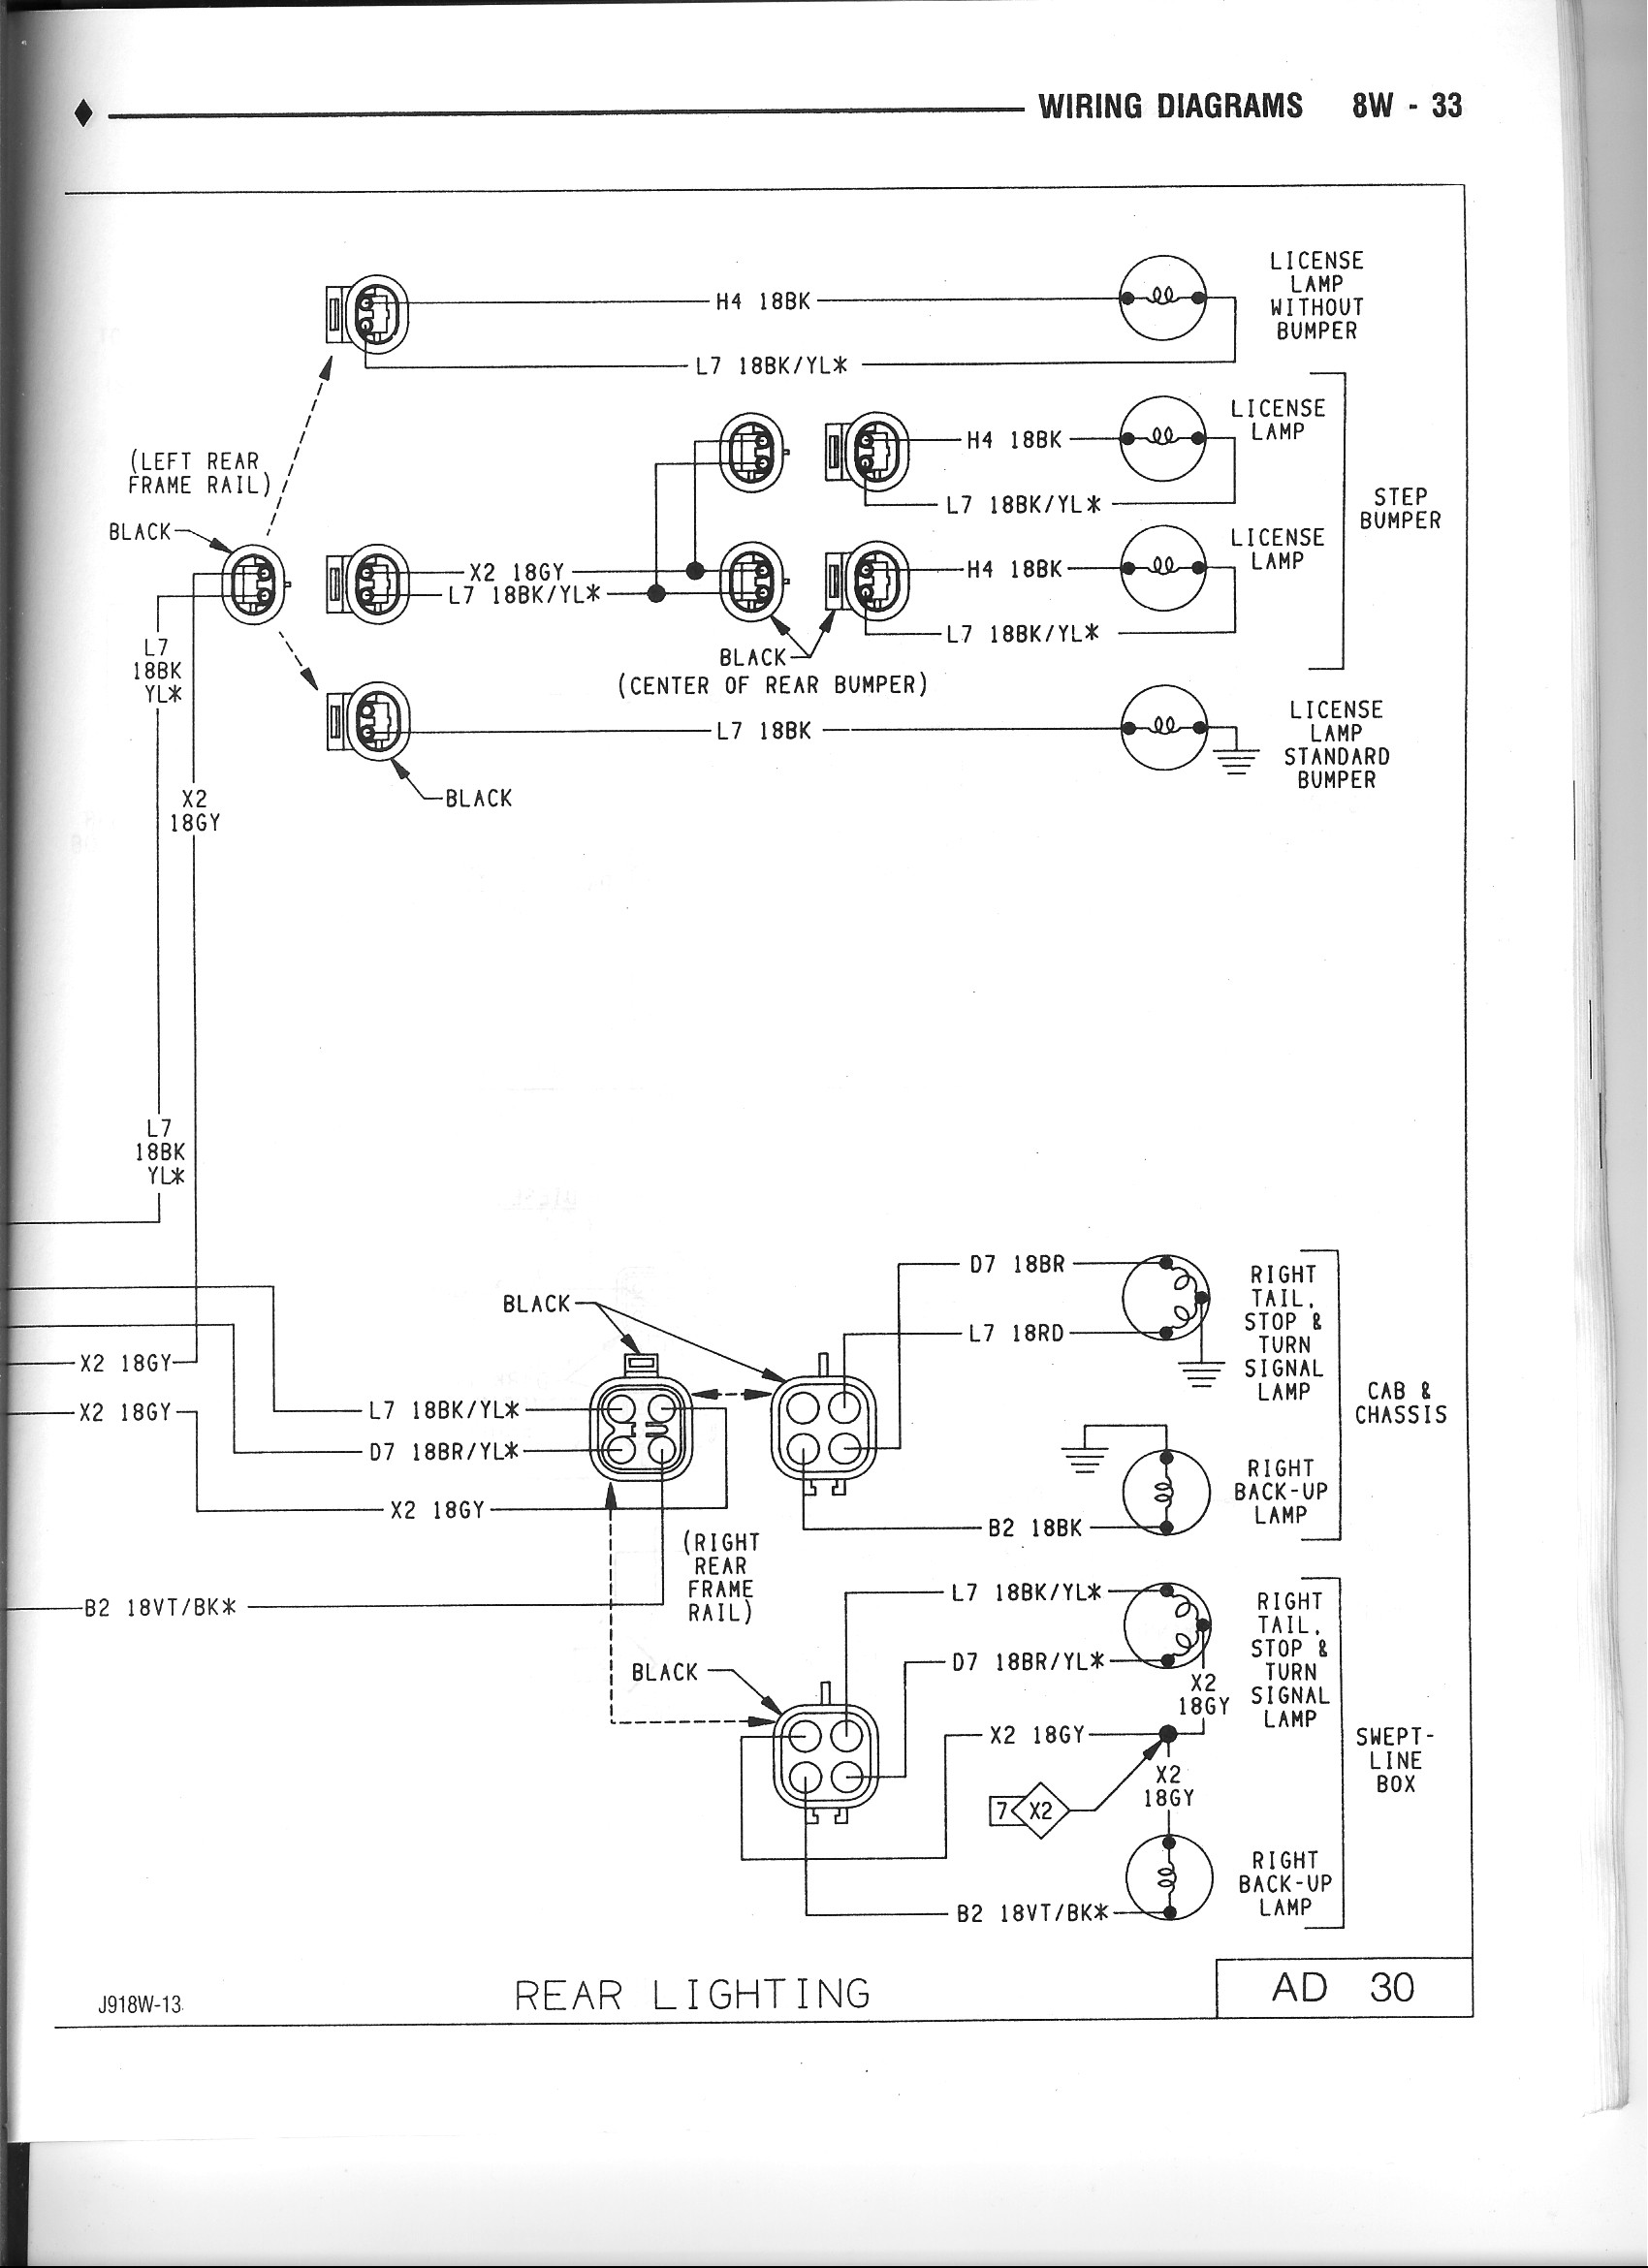 wiring harness - dodge diesel - diesel truck resource forums 2006 nissan xterra tail light wiring diagram 2006 dodge ram tail light wiring diagram